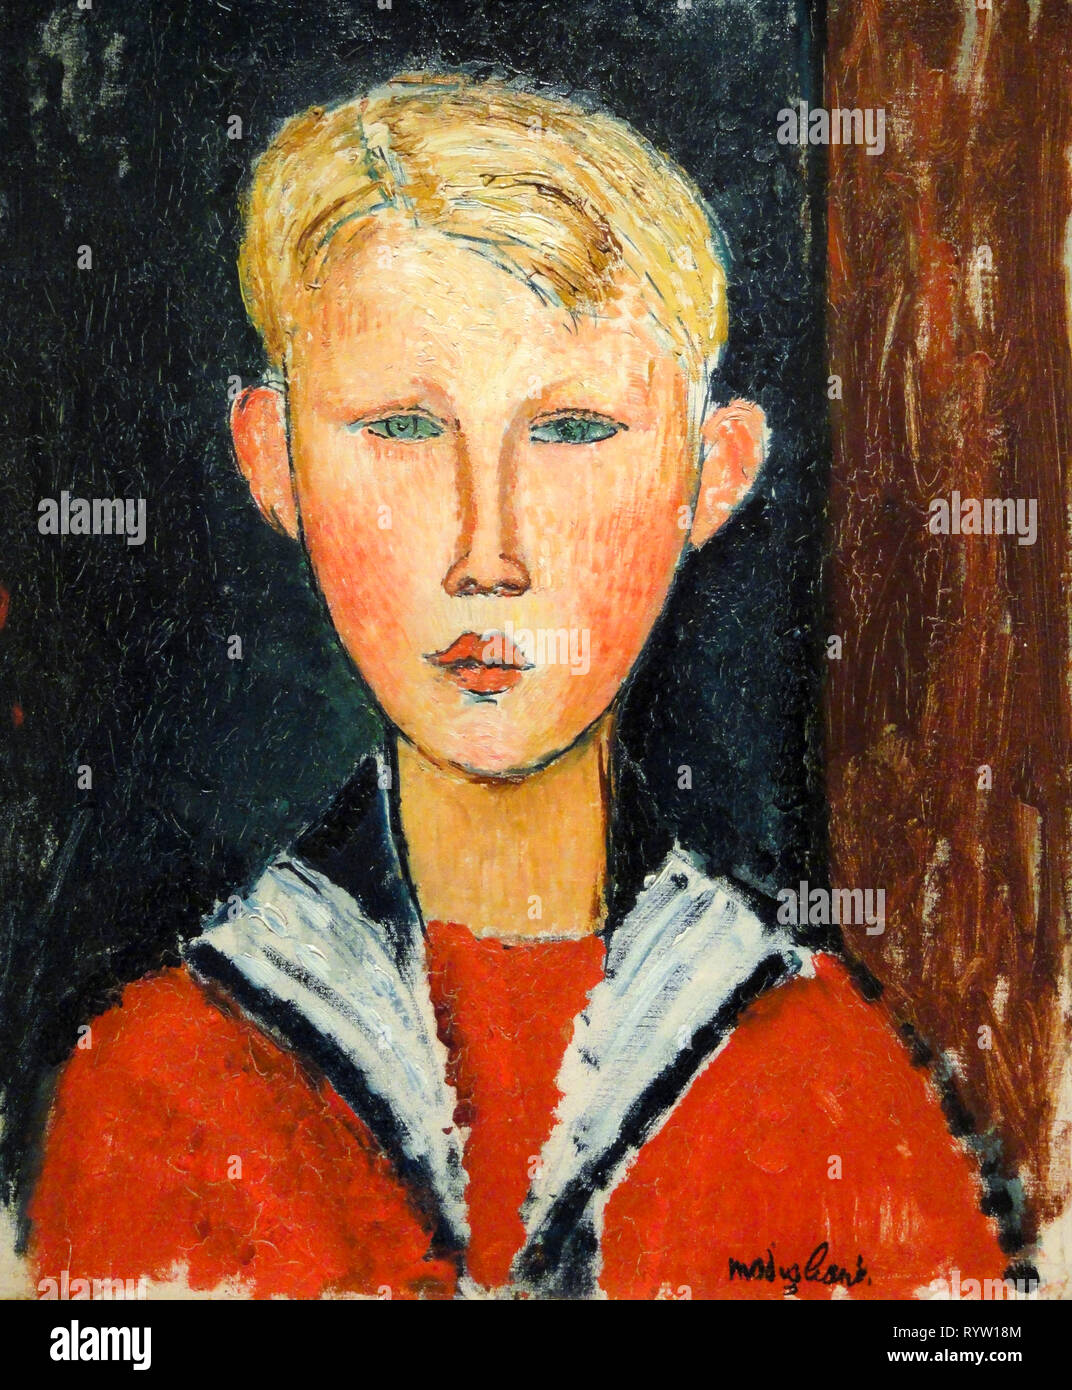 Amedeo Modigliani, The Blue-eyed Boy, portrait painting, 1916 Stock Photo